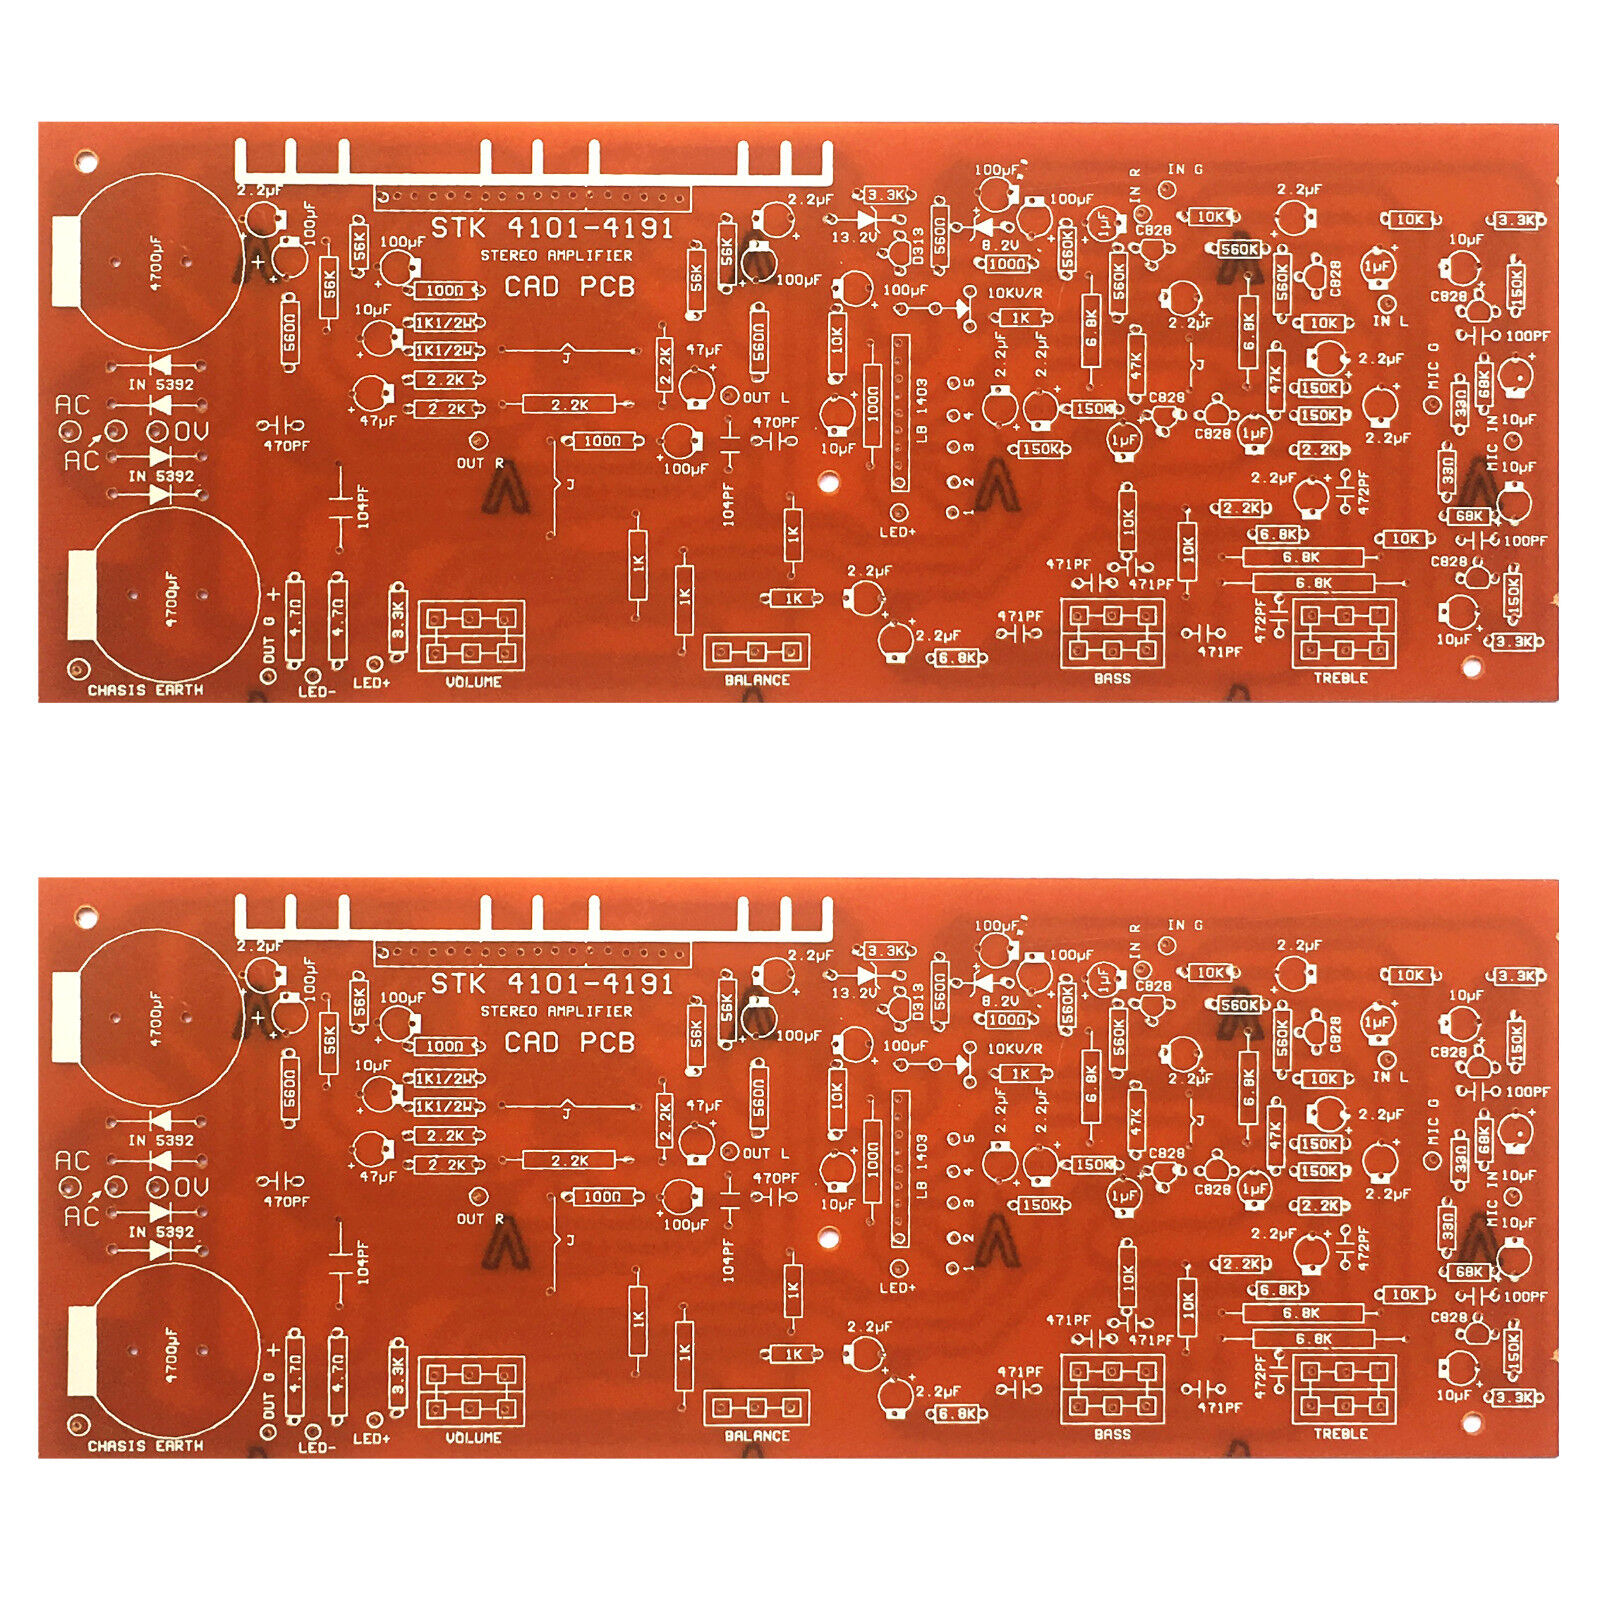 Stk 4101 4191 100w Stereo Power Amplifier With Mic Pre Amp Pcb Ccl Anti Etching Circuit Board Ink Marker Pen For Diy Ebay